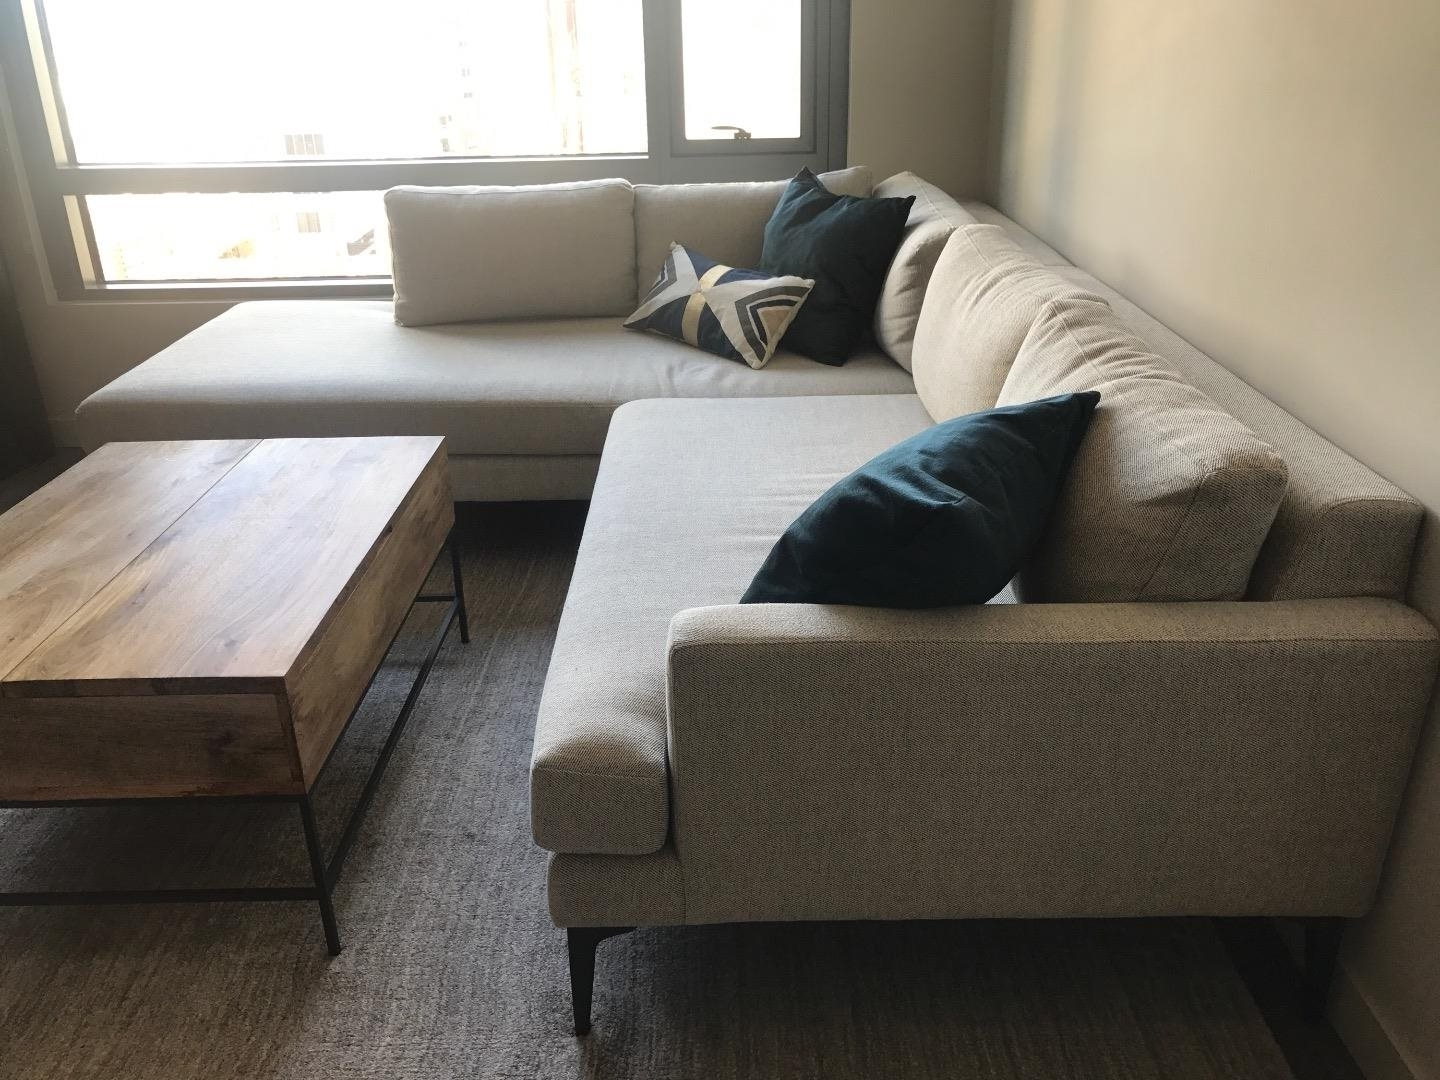 West Elm Andes Terminal Chaise Sectional Couch: For Sale In San Pertaining To Favorite West Elm Chaises (View 14 of 15)